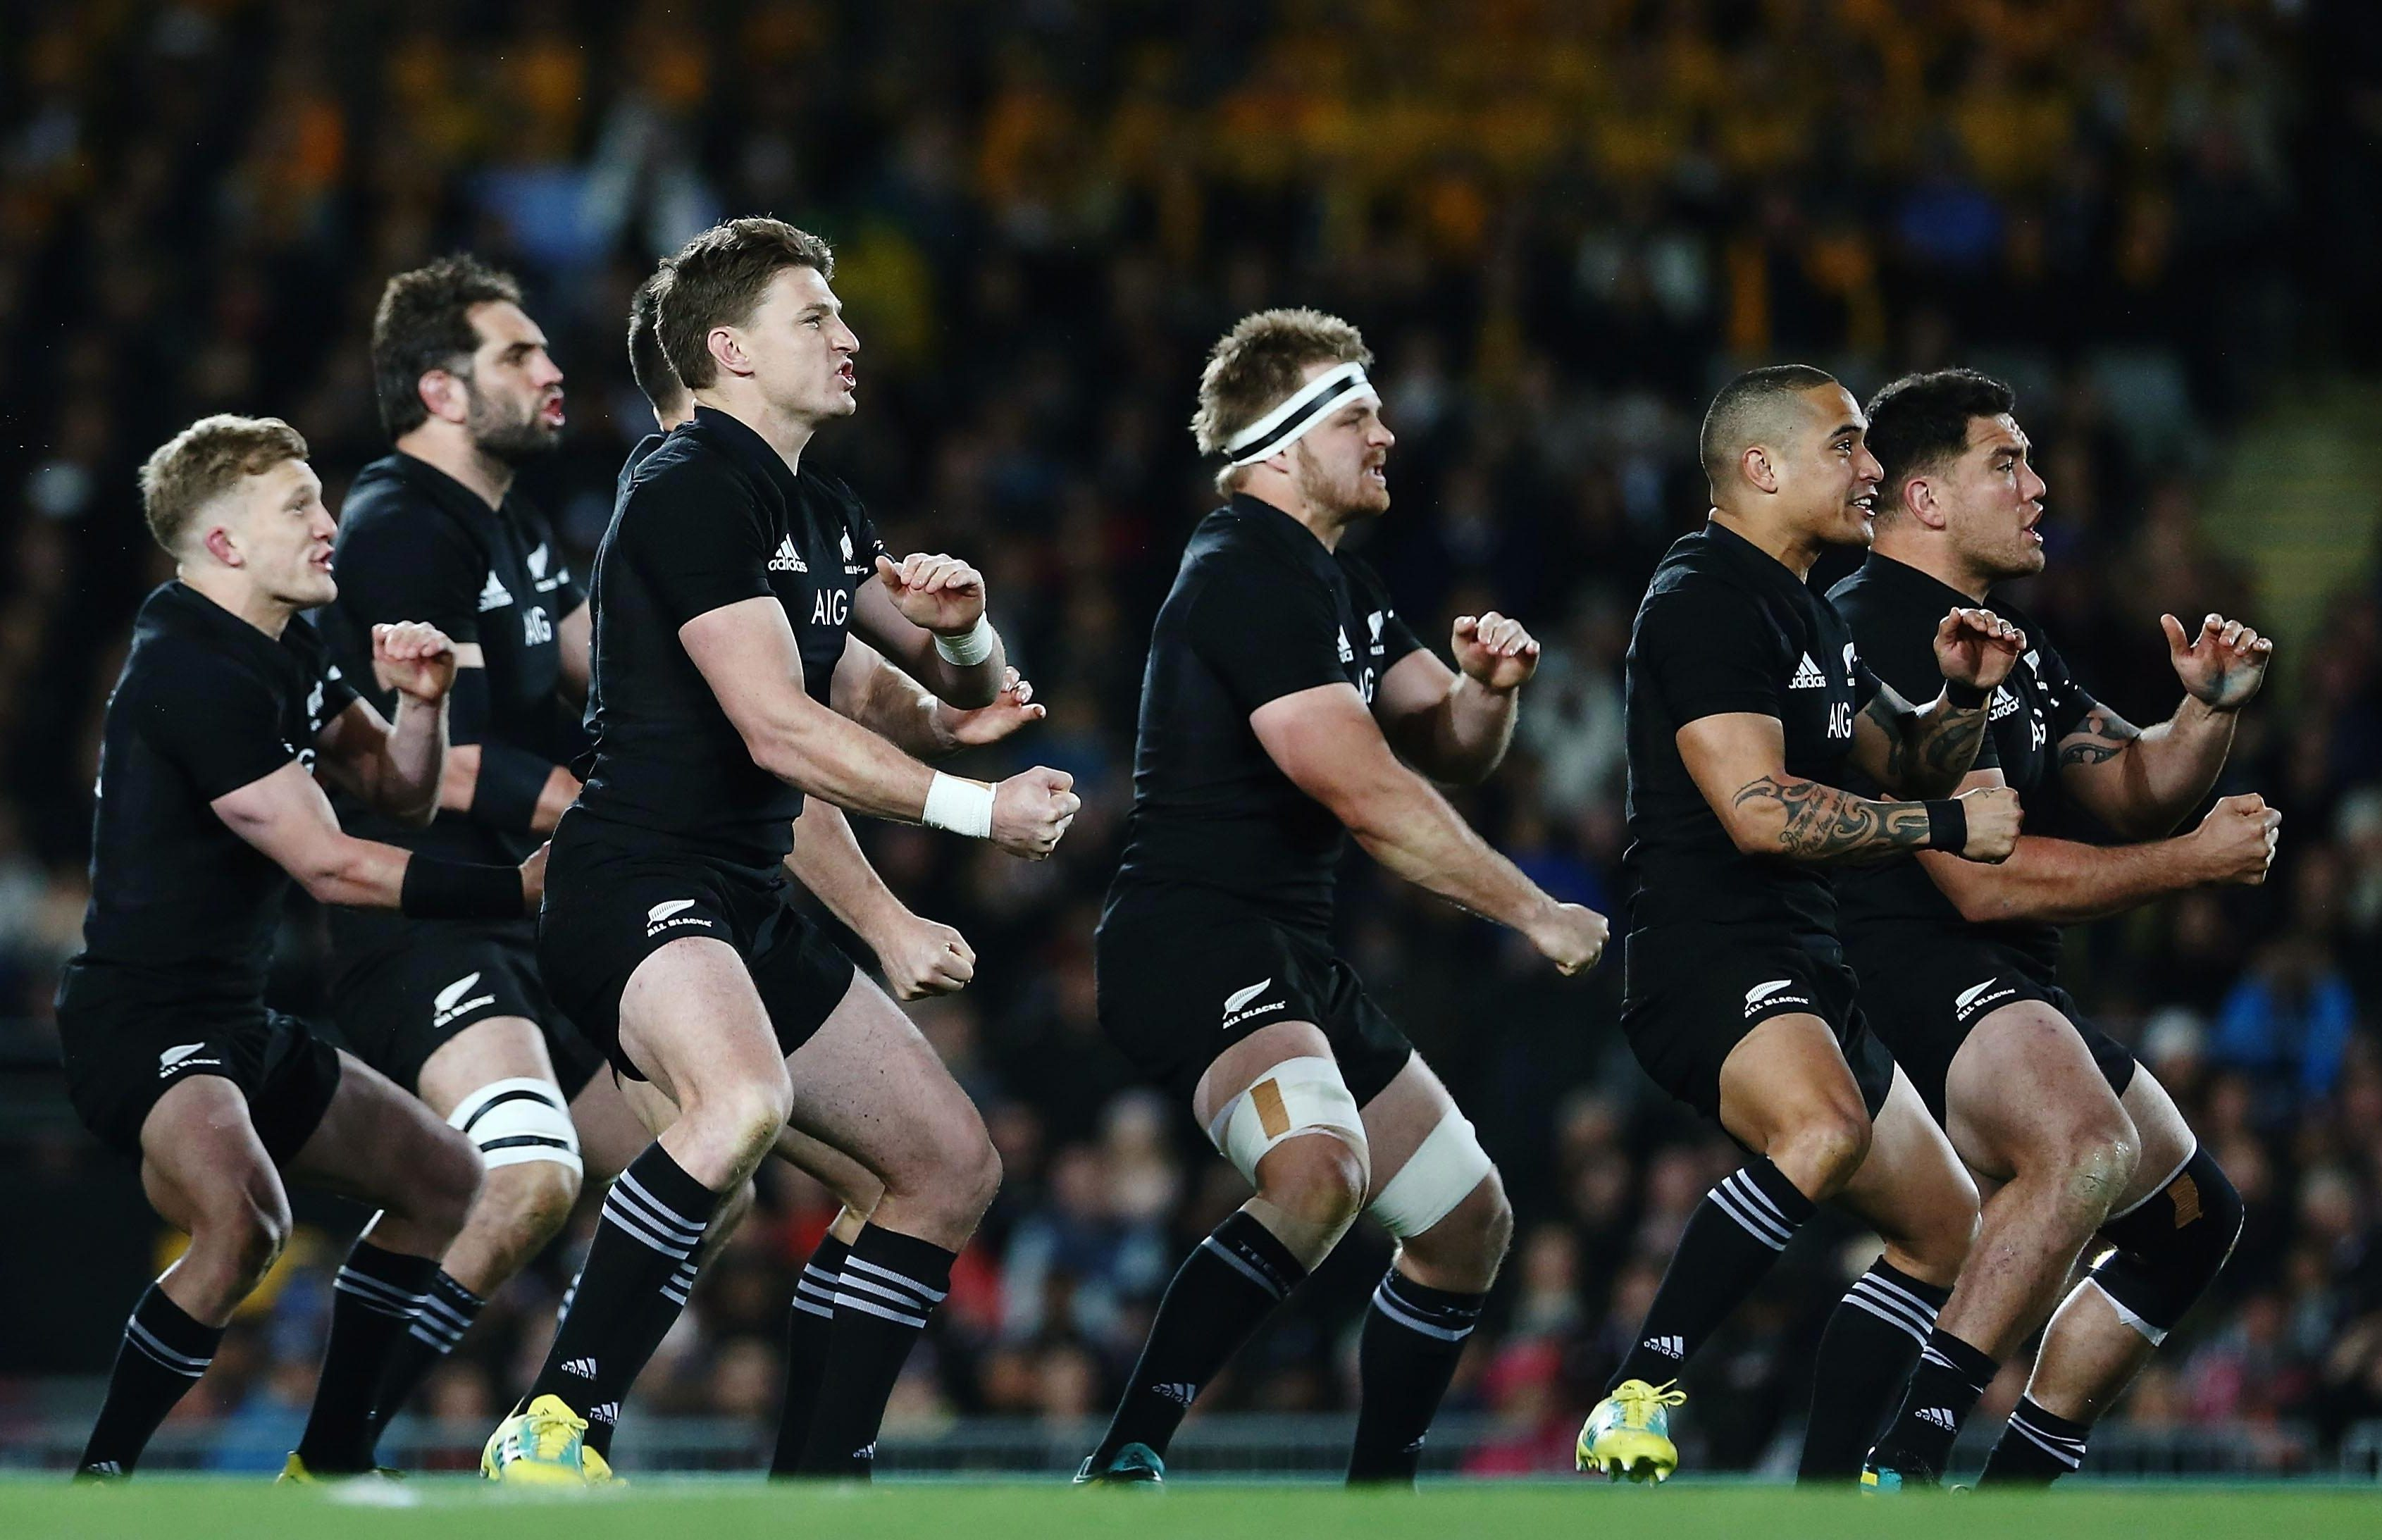 The All Blacks are looking to continue their one hundred per cent start in the Rugby Championship